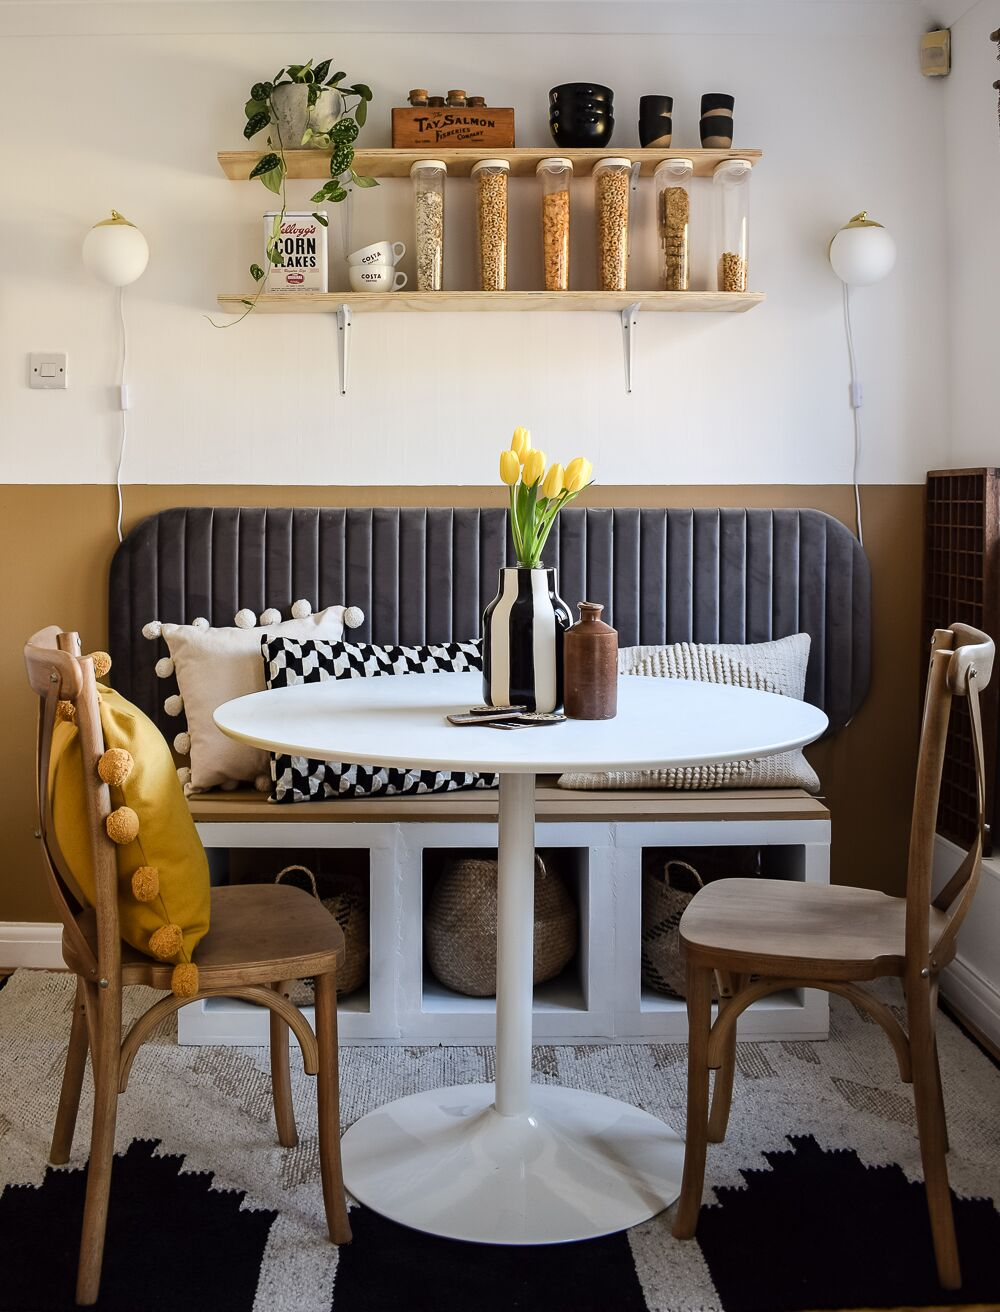 CAFE style dining nook with ikea kallax units as seating and bistro table